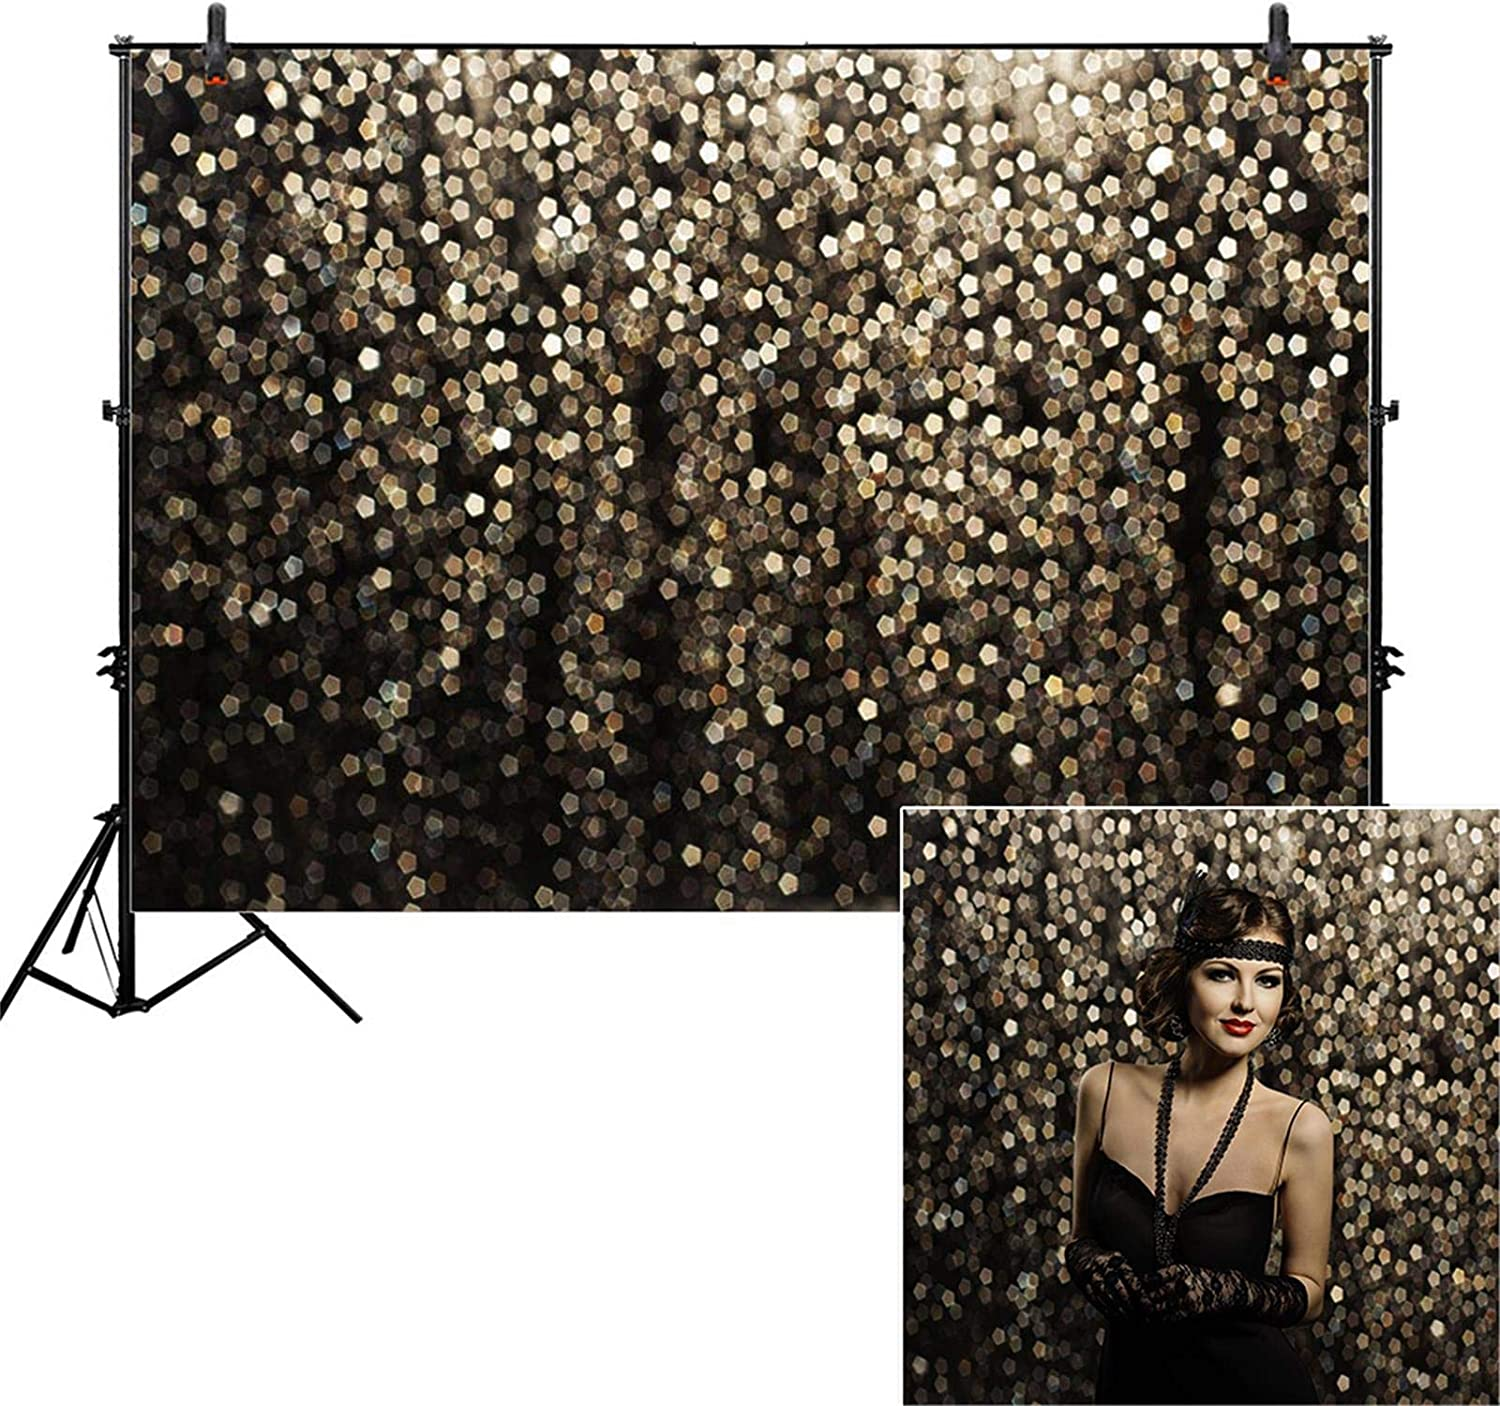 Allenjoy 7x5ft Gold Bokeh Spots Backdrop for Selfie Birthday Party Pictures Photo Booth Shoot Graduation Prom Dance Decor Wedding Vintage Astract Dot (No Glitter) Studio Props Photography Background